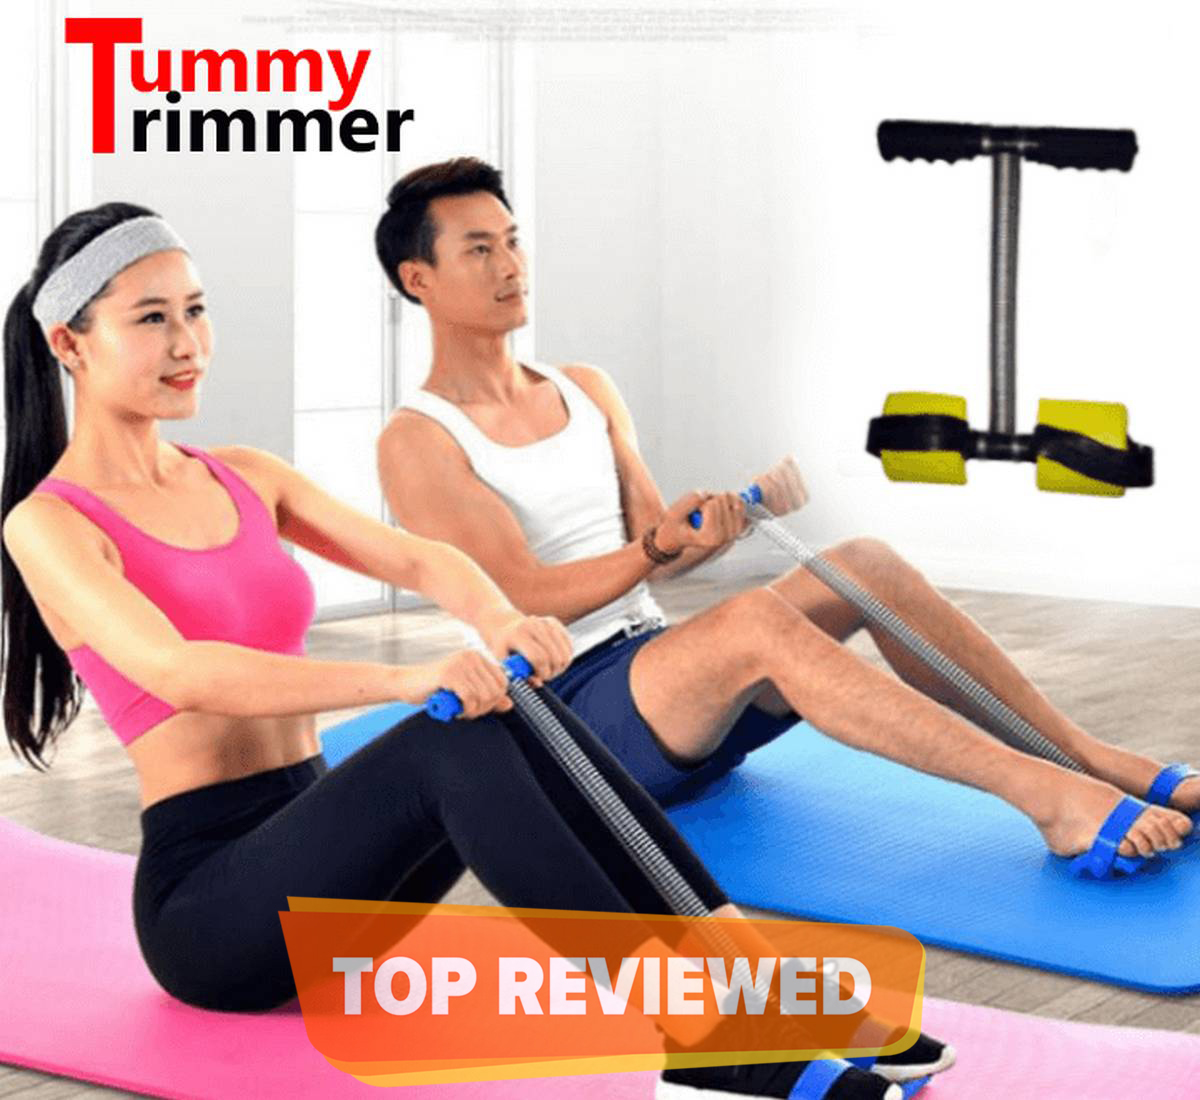 Tummy Trimmer High Quality Single/Double Spring Weight loss machine Belly loosening Machine